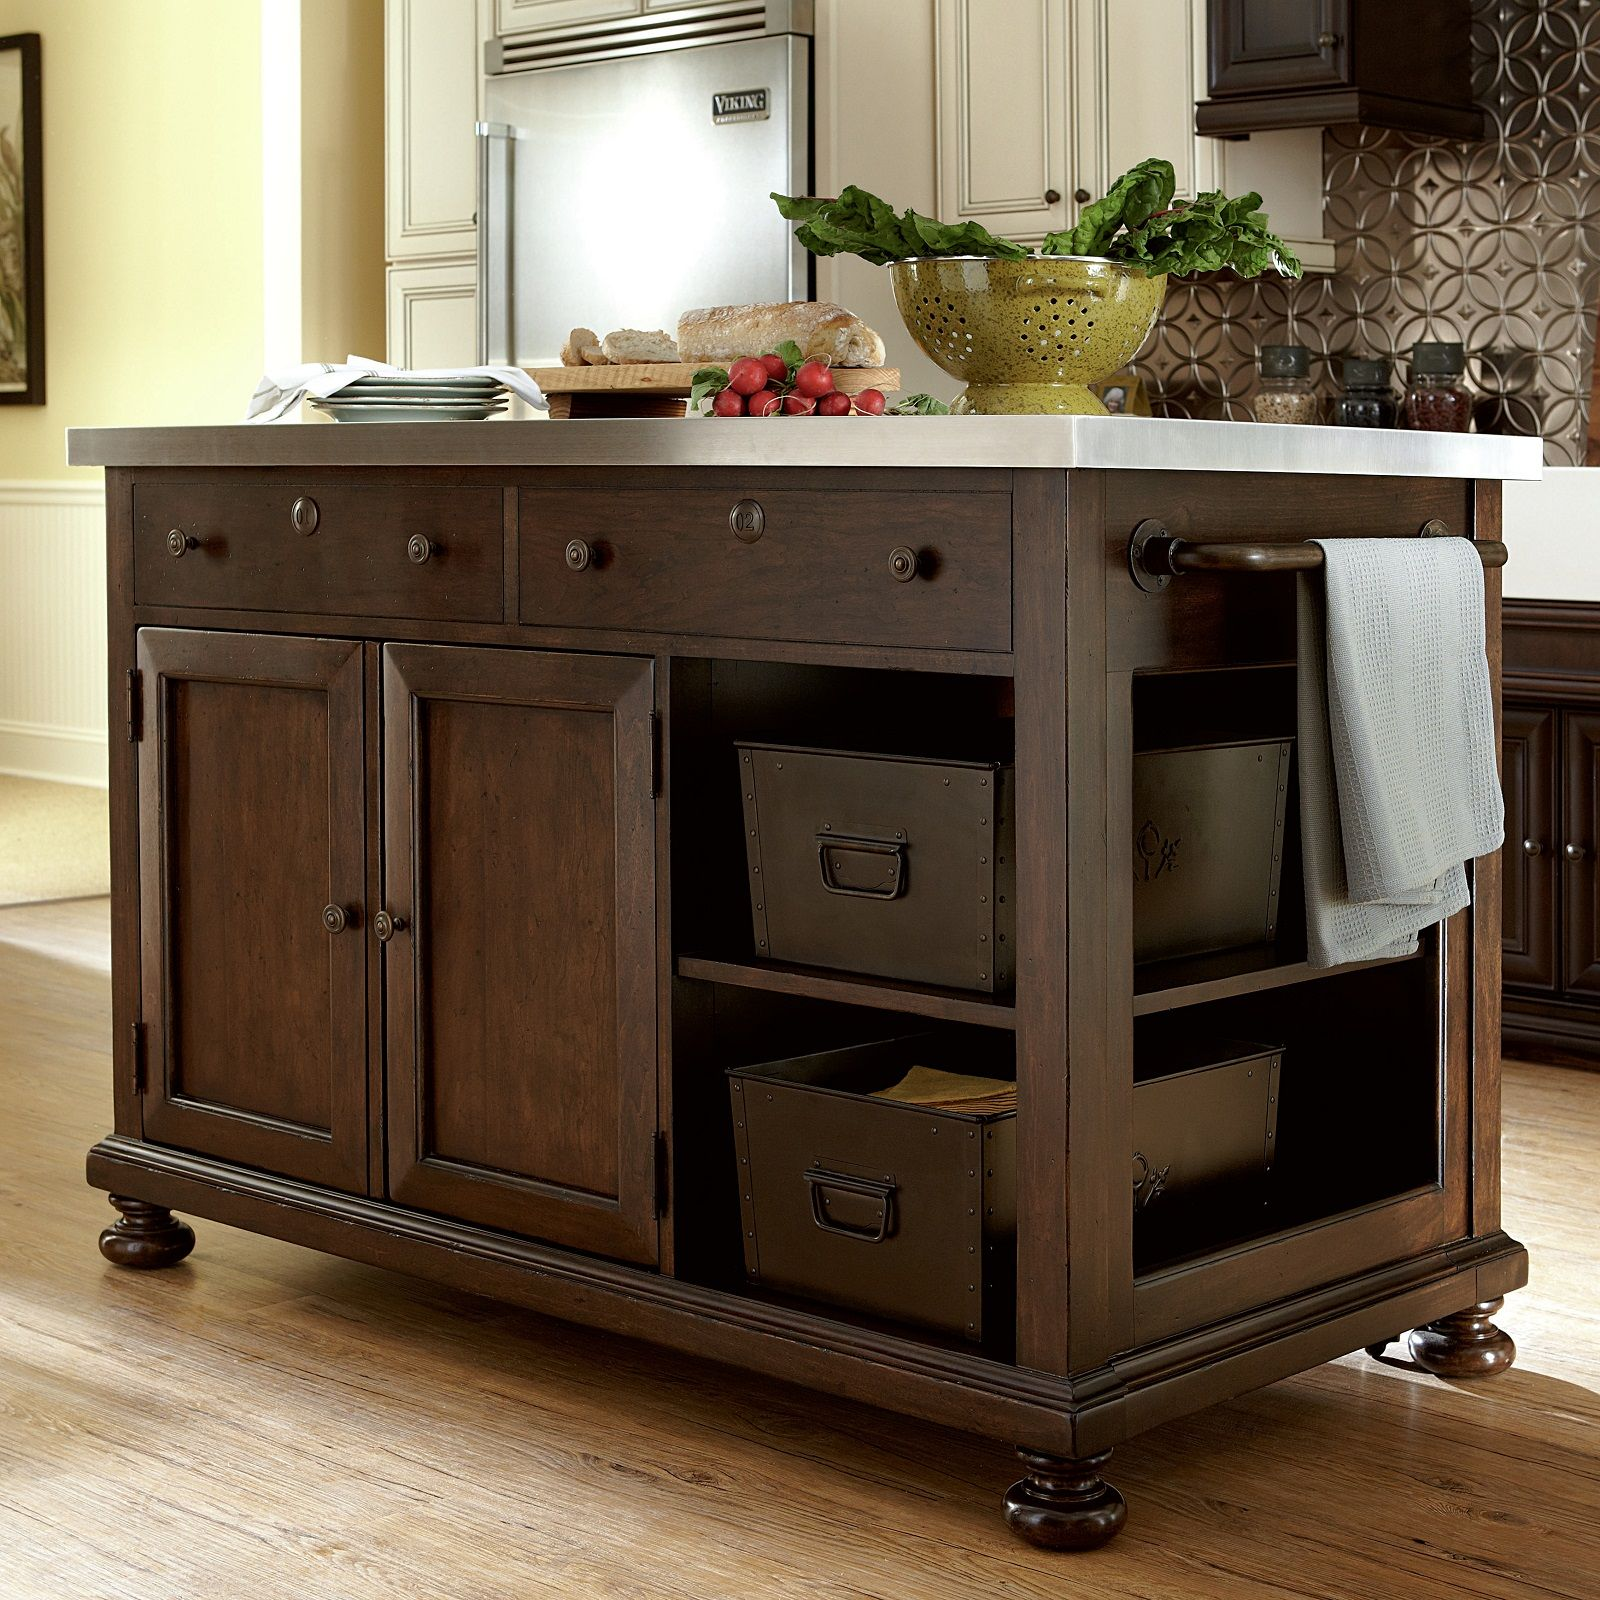 17+ Kitchen Islands   Best Design For Kitchen Furniture Ideas